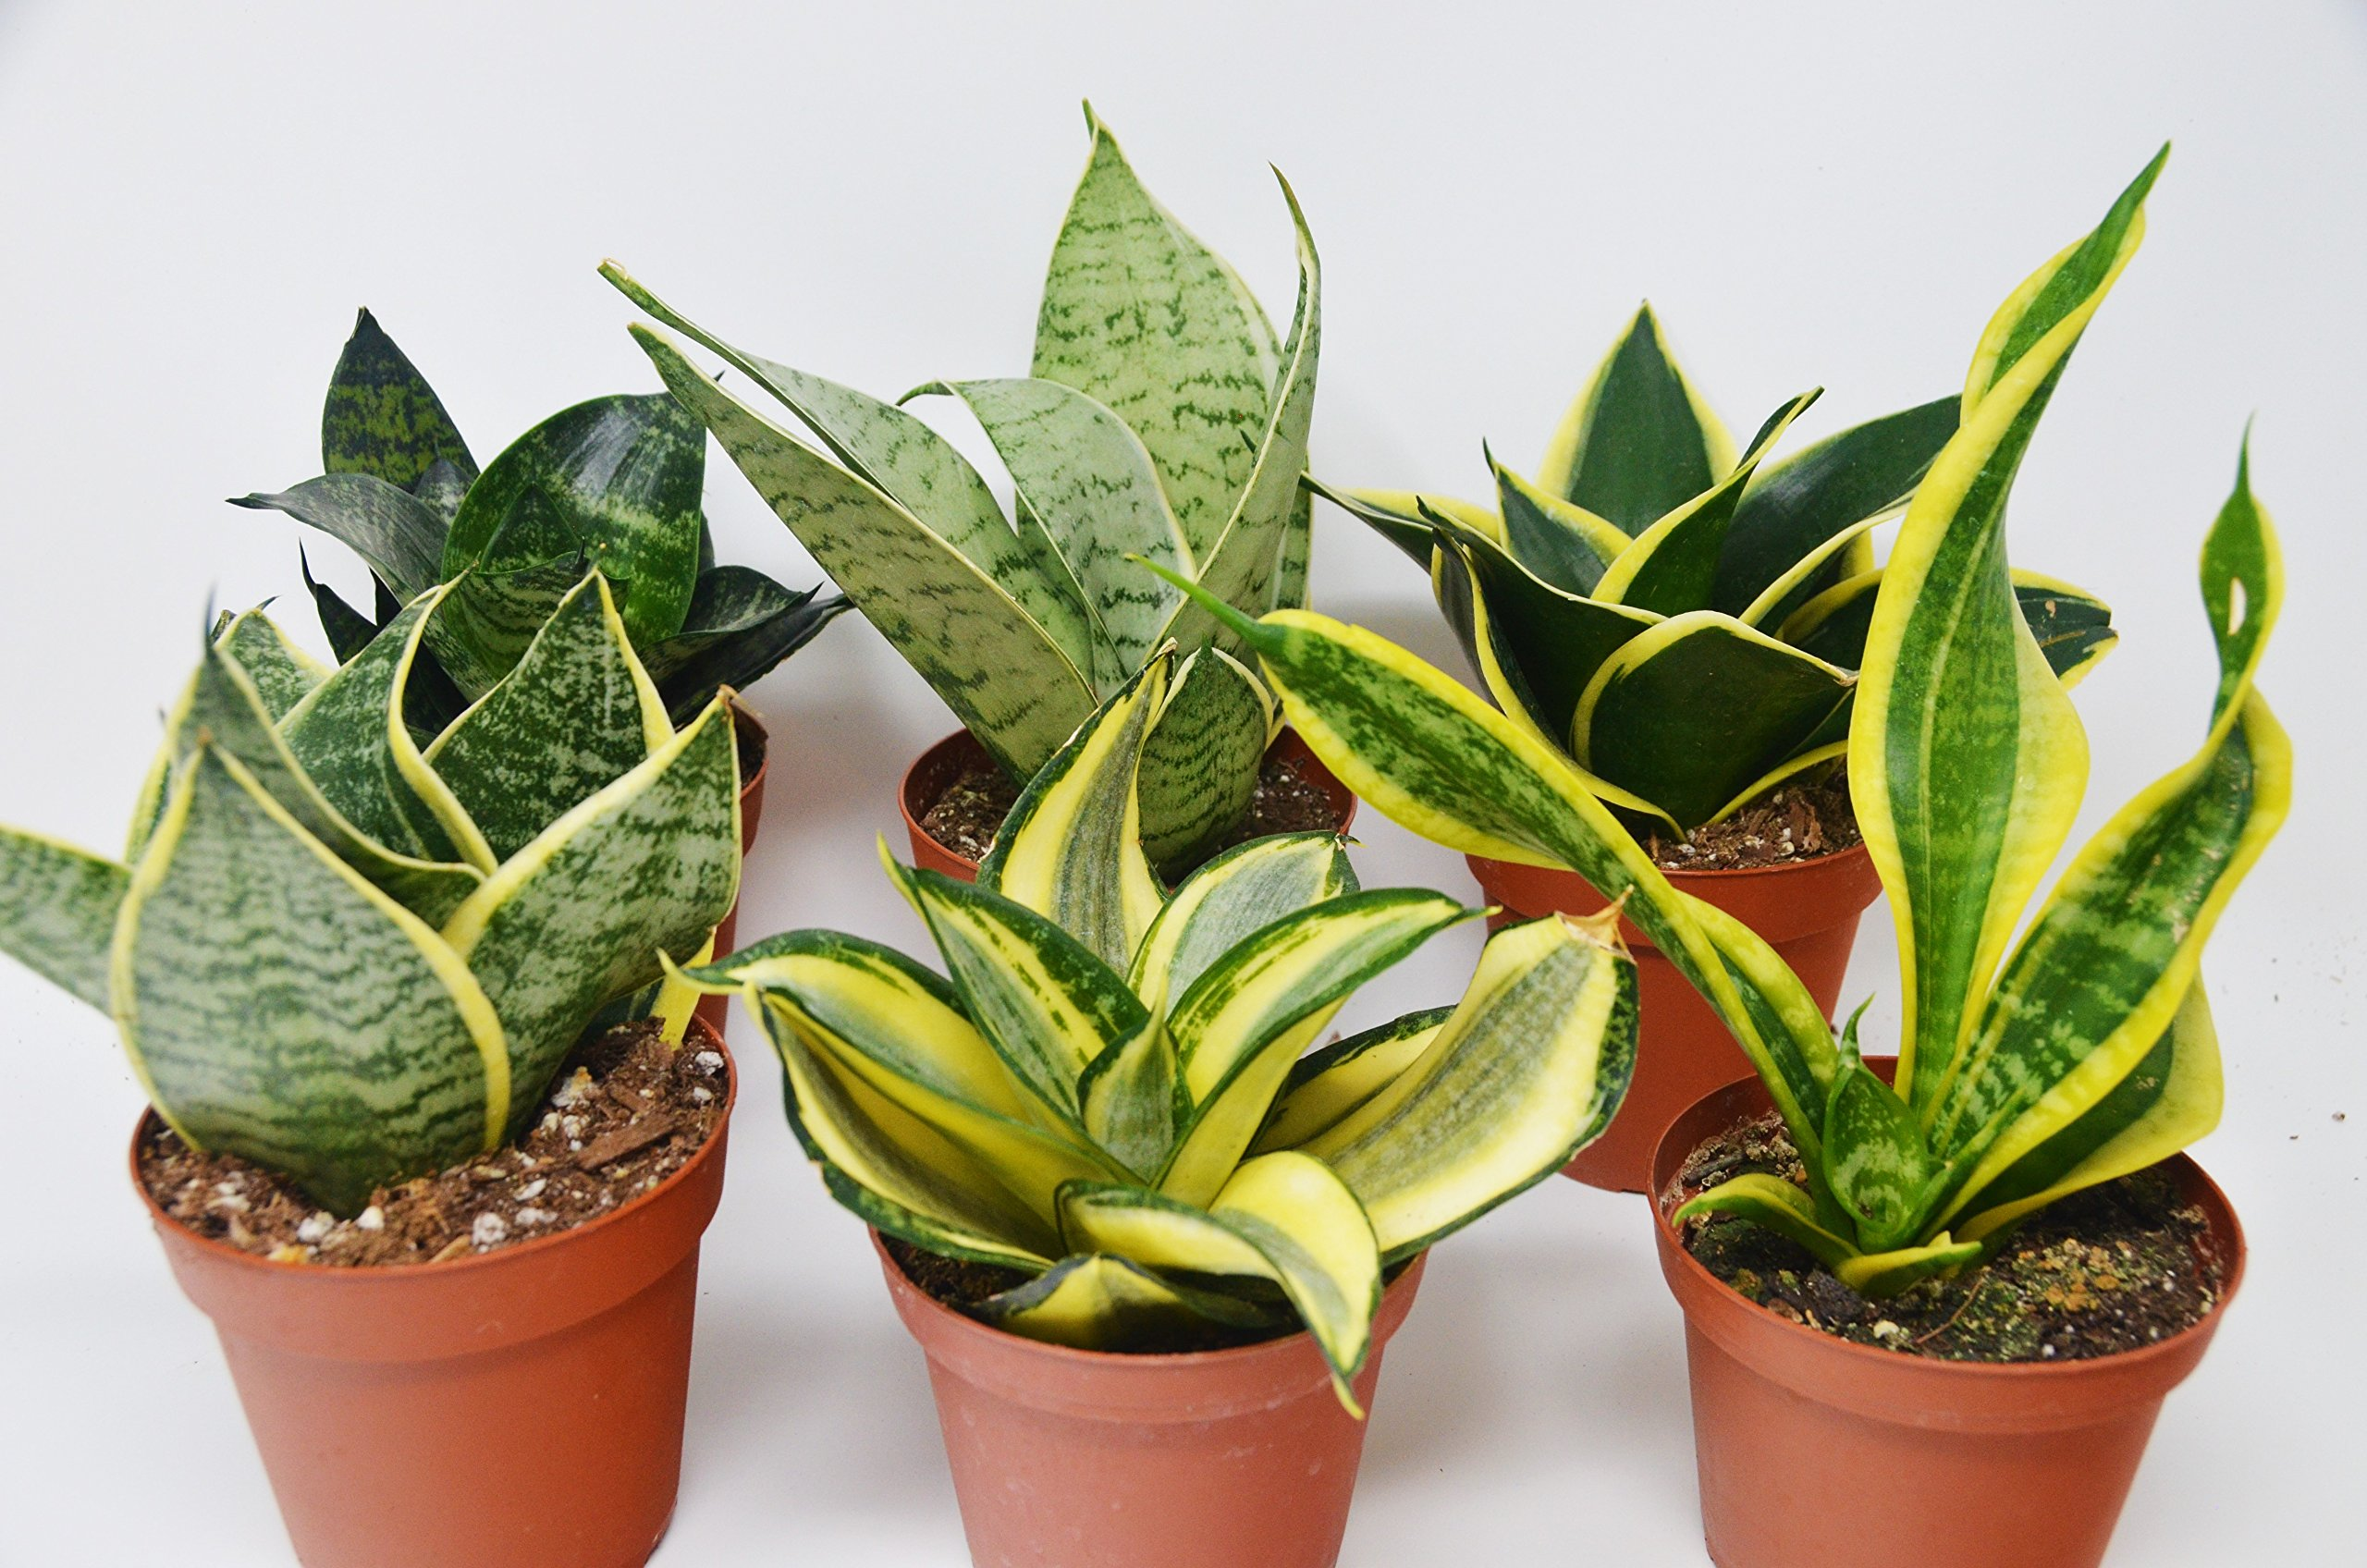 6 Different Snake Plants in 4'' Pots - Sansevieria - Live Plant - FREE Care Guide by House Plant Shop